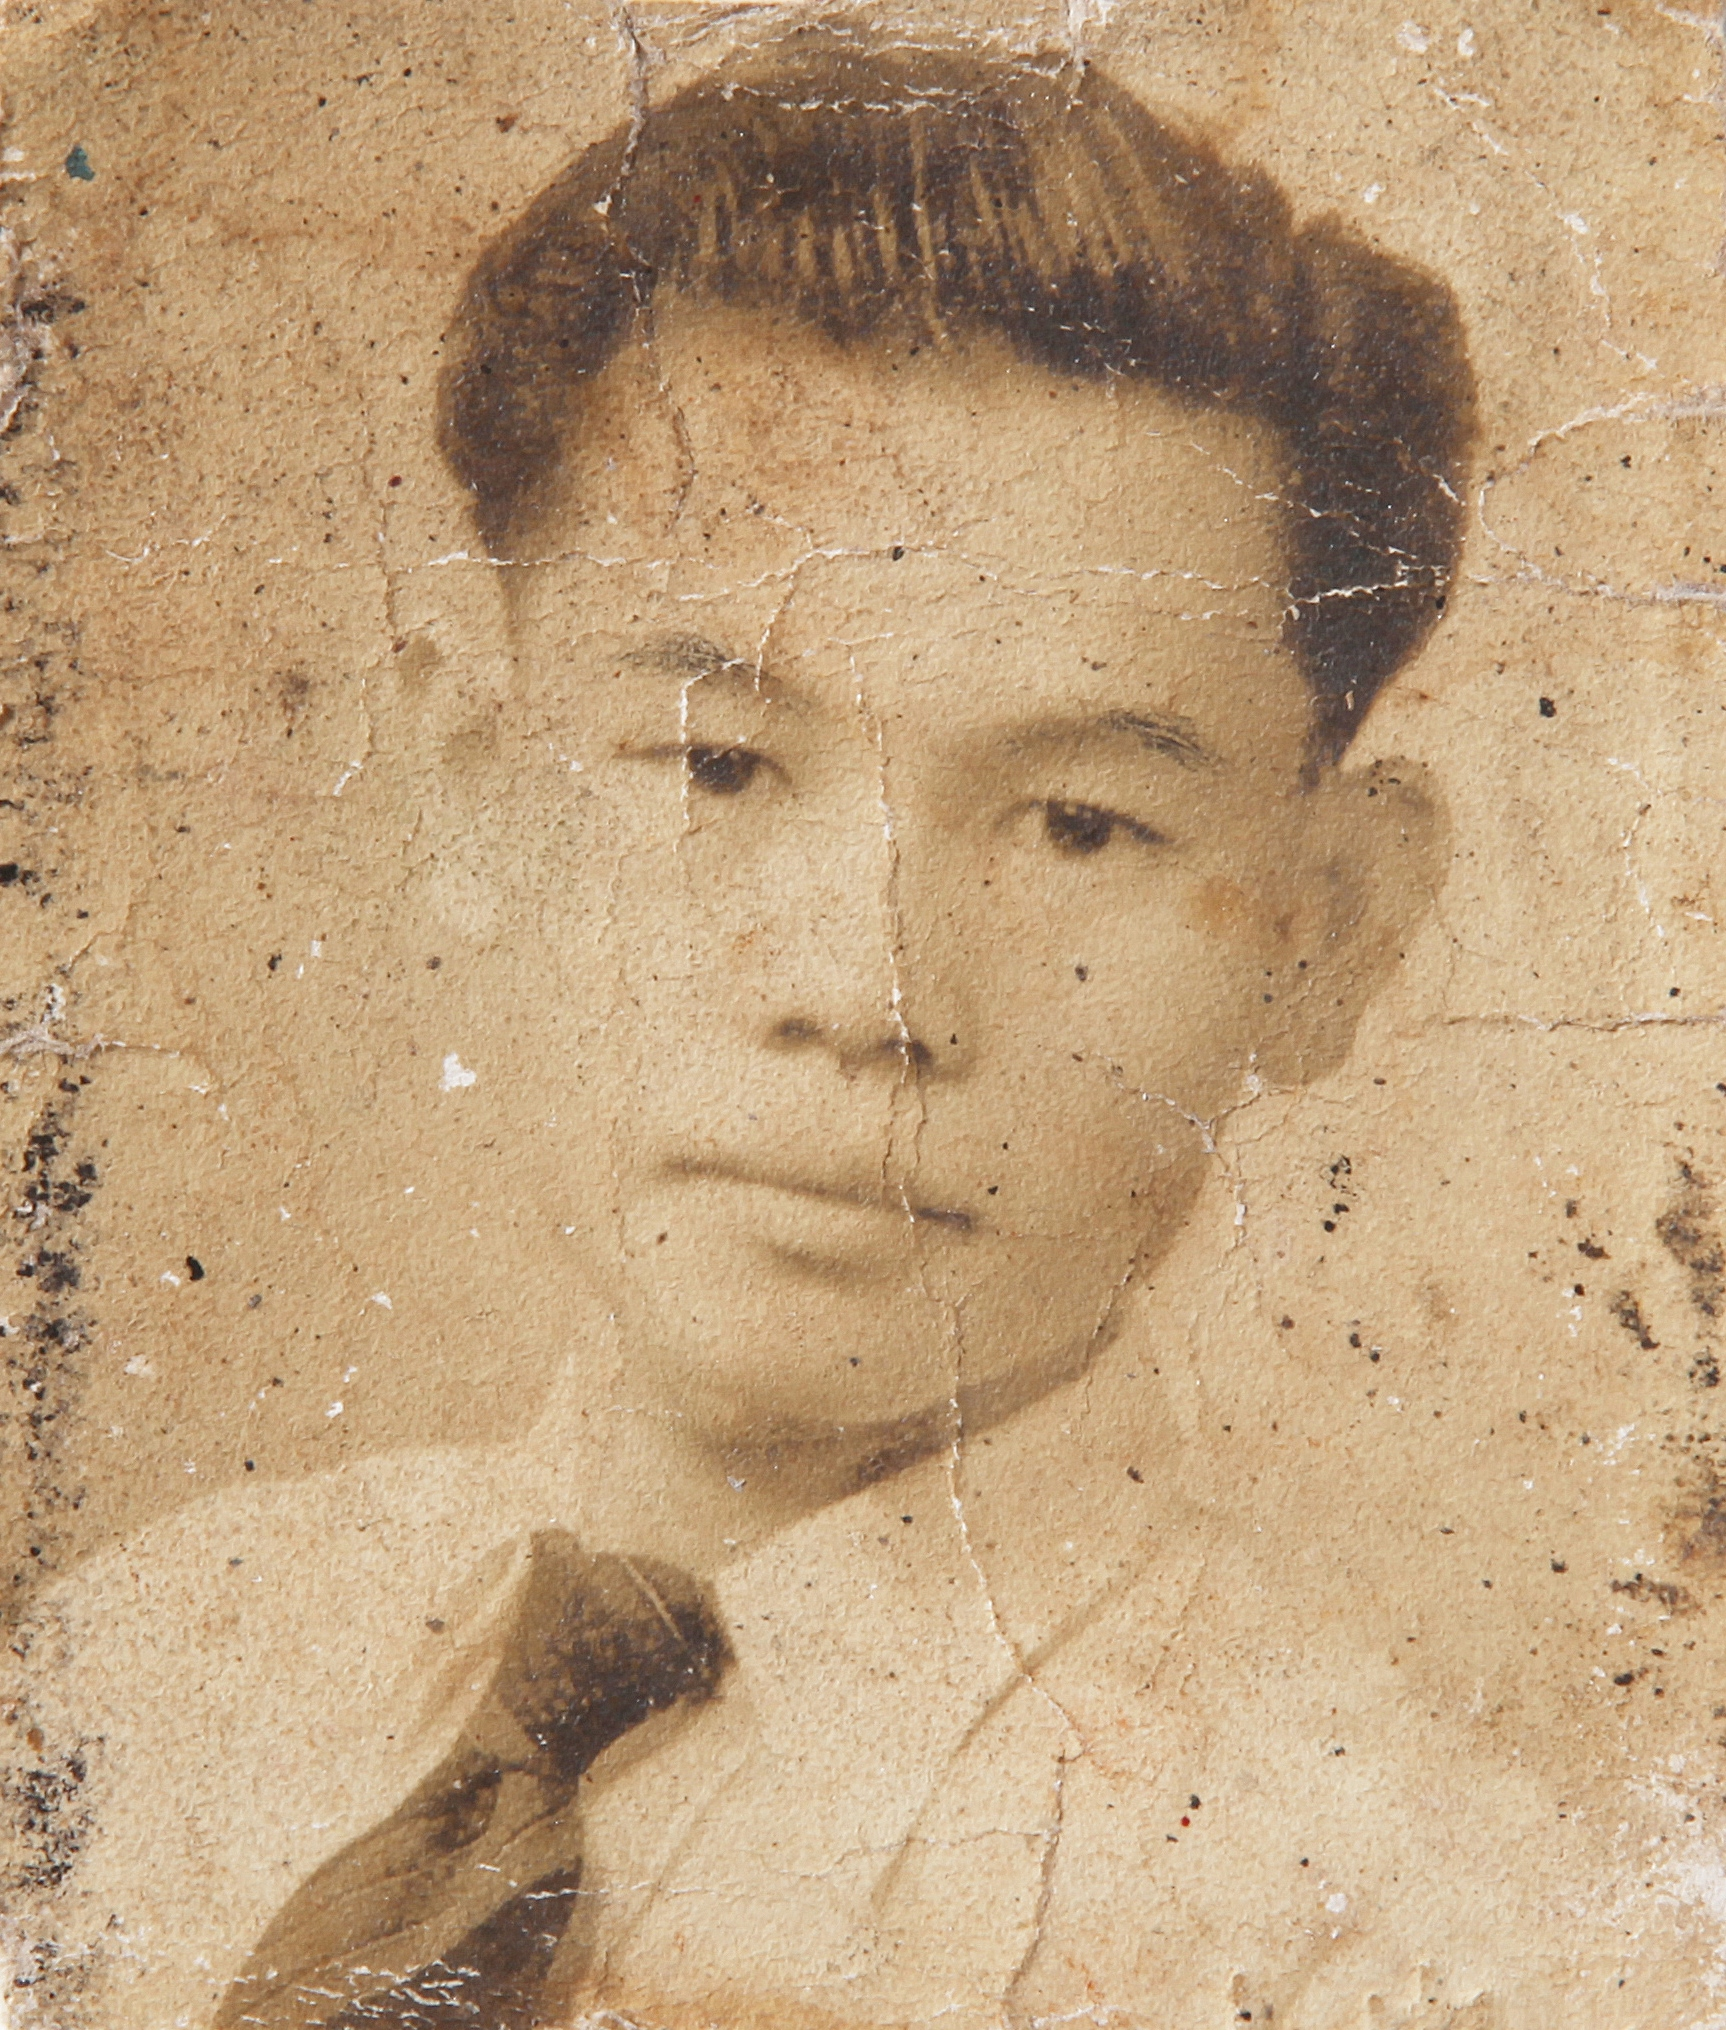 Cheang Toh Khoon in his younger days. (photo courtesy of Cheang Toh Khoon)